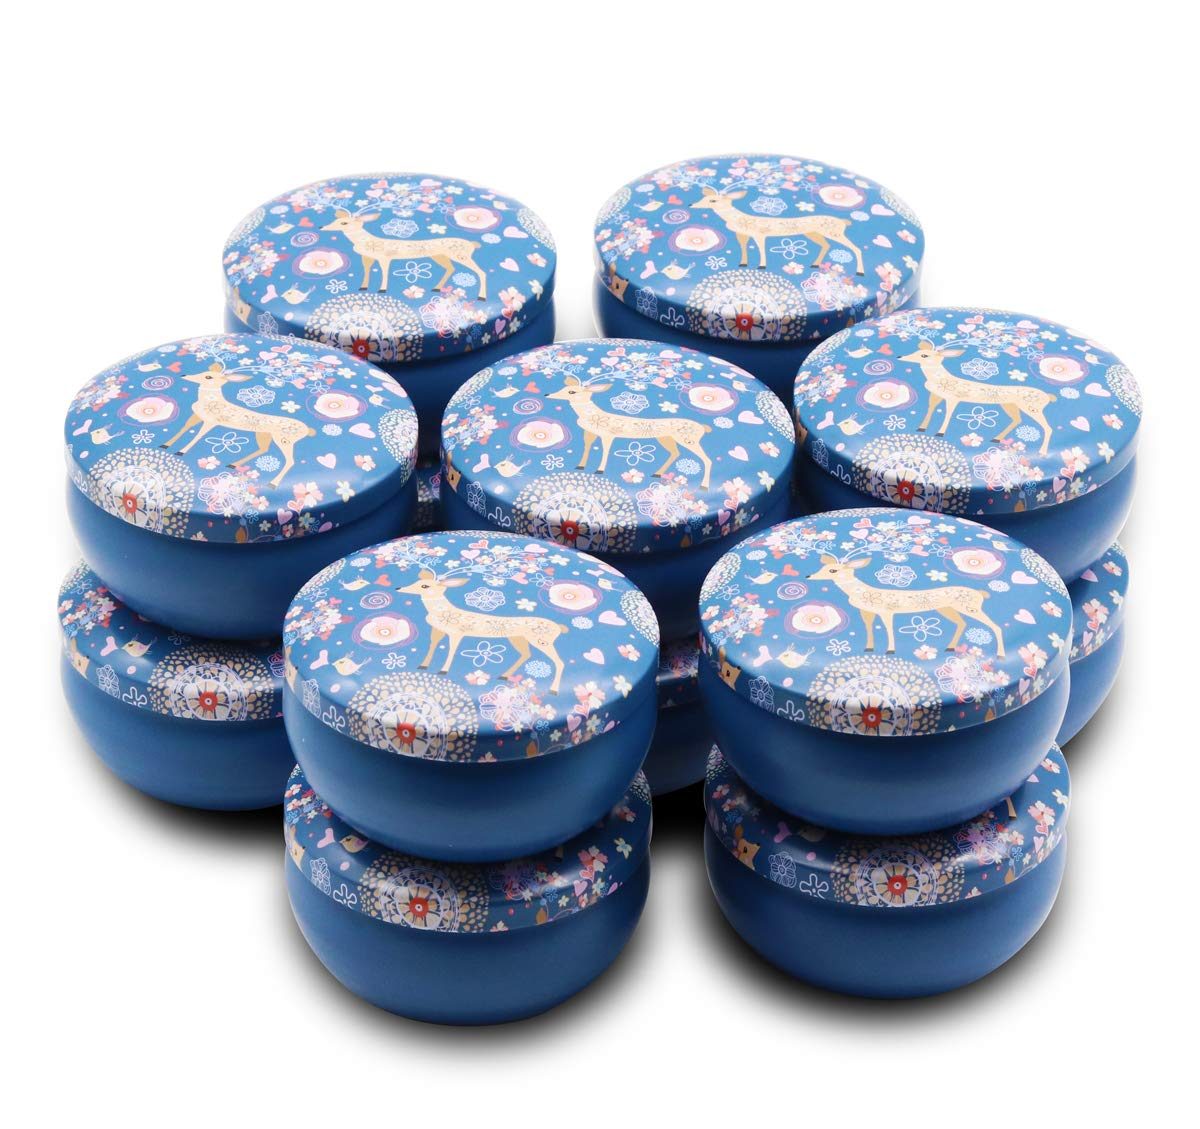 JulWhisper Candle Making Supplies - 4-Ounce Candle Tins 14 Piece with Lids for Candle Making, Dreamy Deer Metal Tin Jar for Party Favors, Sweets, Spices, Gifts